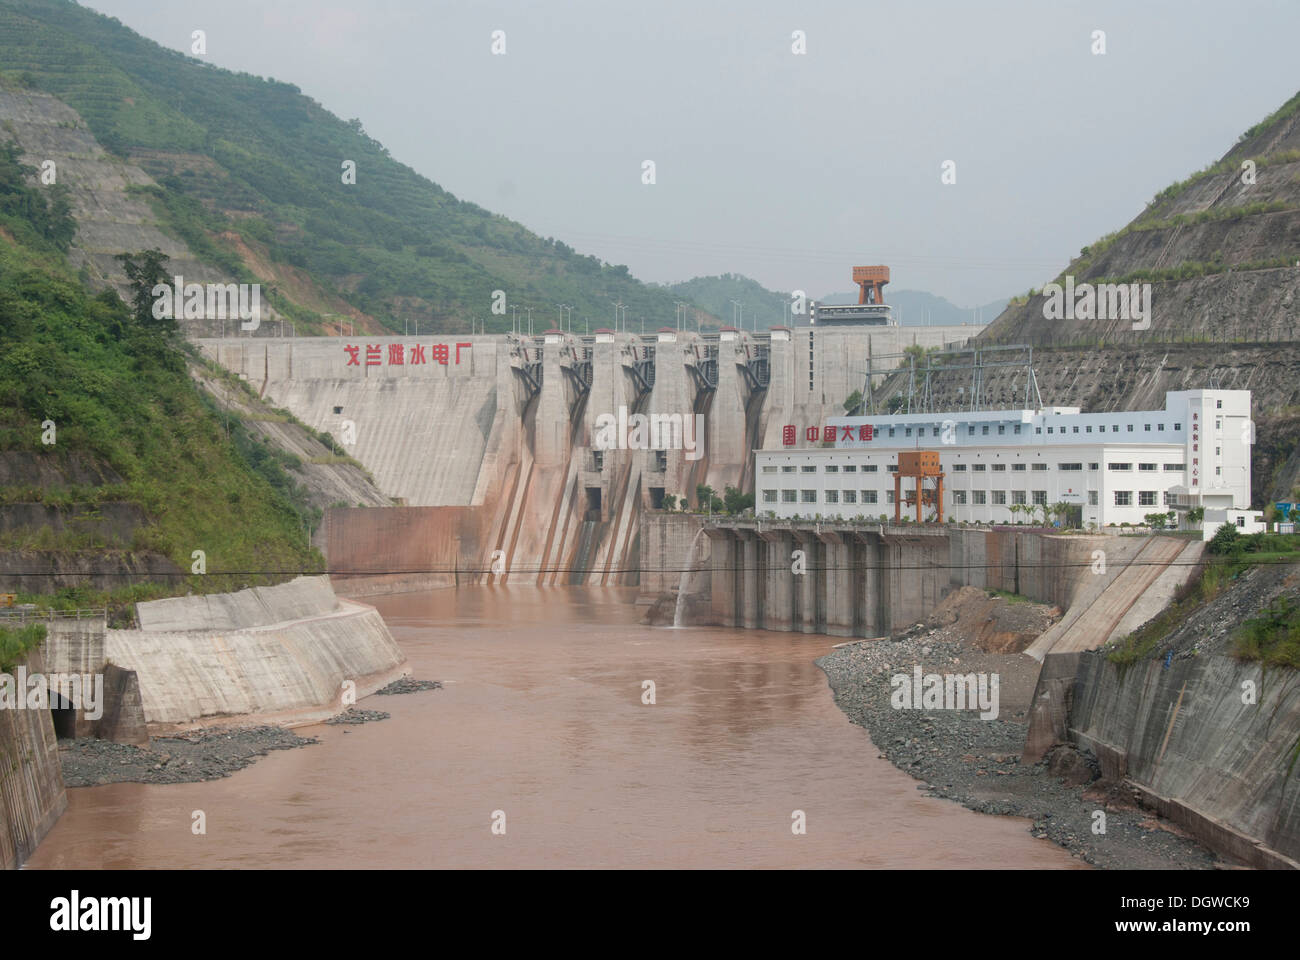 Production of electricity, dam, hydropower plant in the river, Jiangcheng, Pu'er City, Yunnan Province - Stock Image